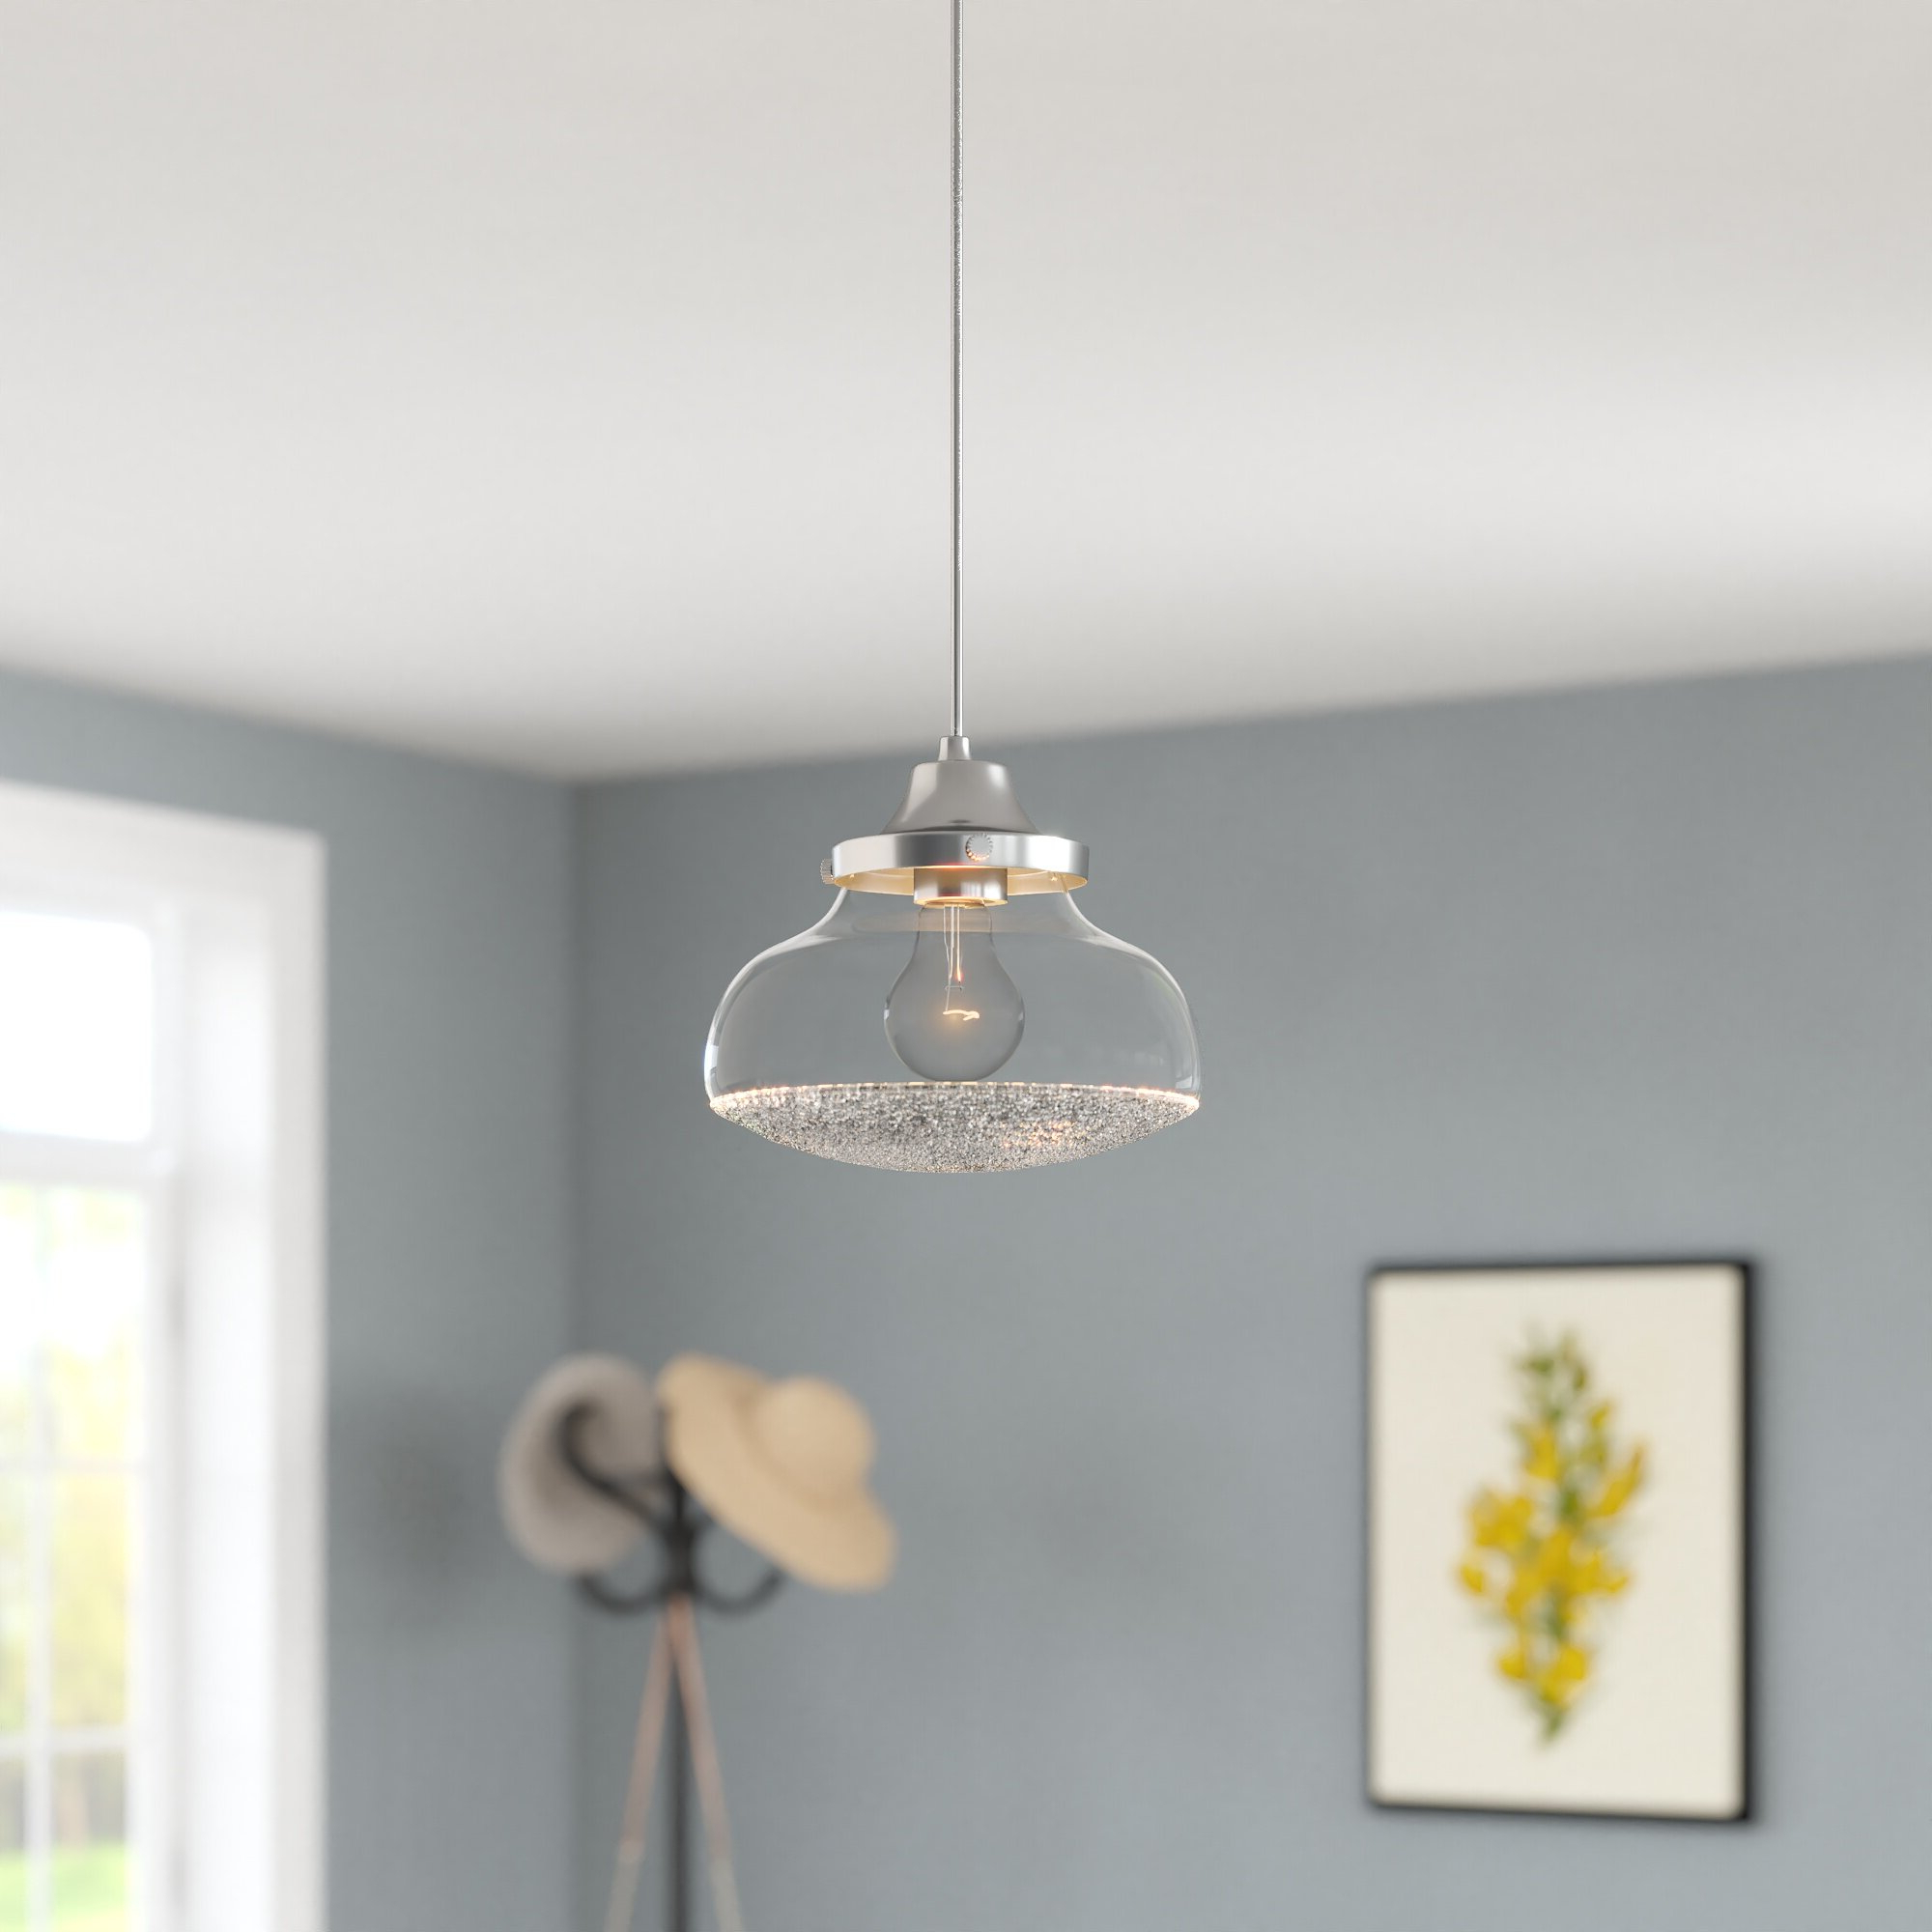 Fashionable Ivy Bronx Pendant Lighting You'll Love In  (View 12 of 25)